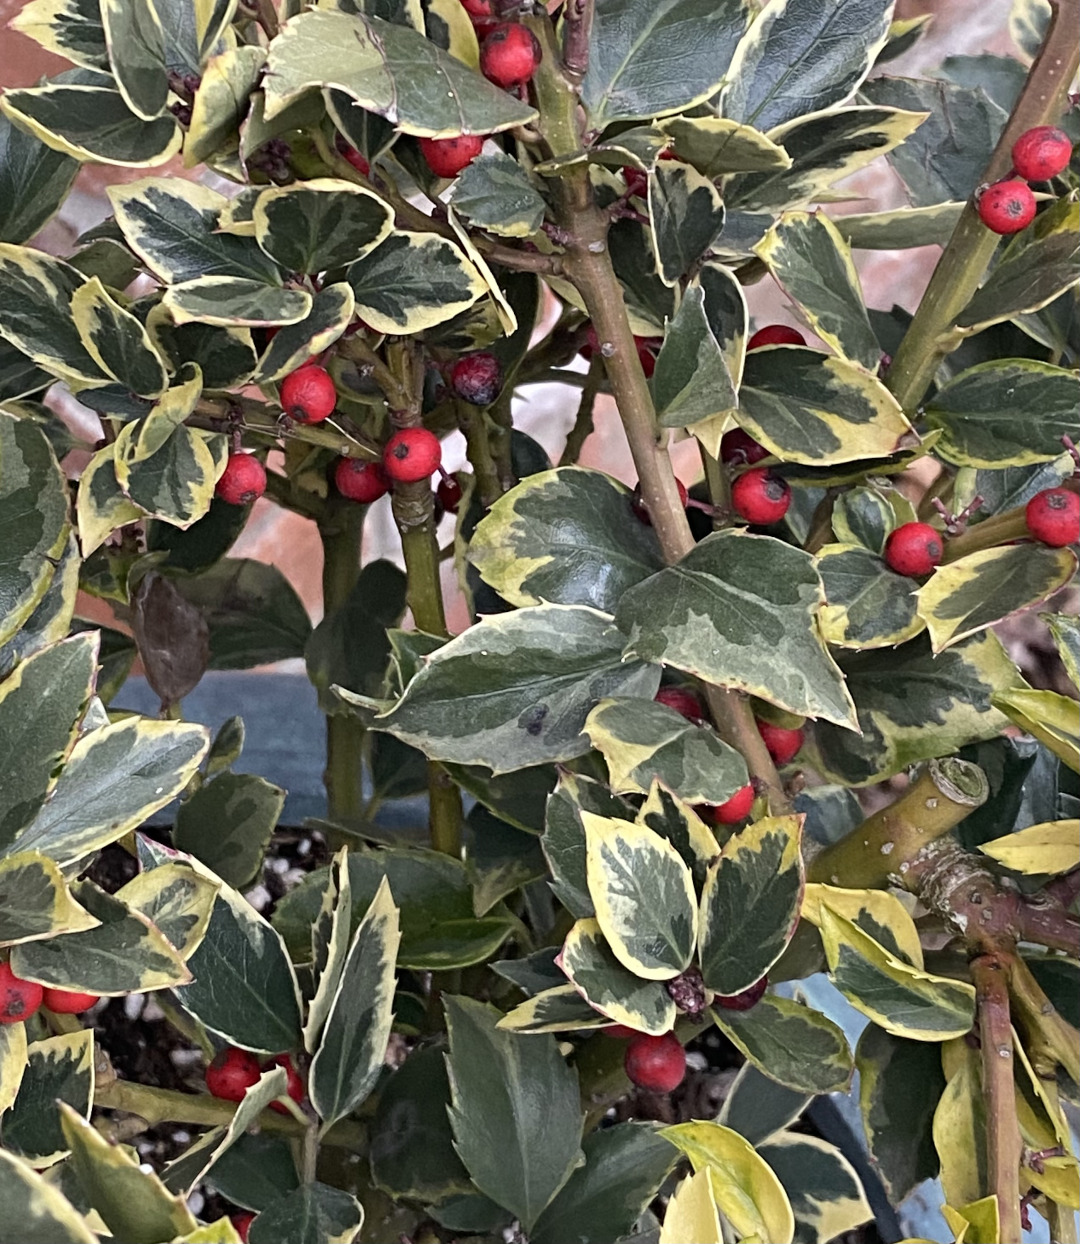 Holly shrub with red berries